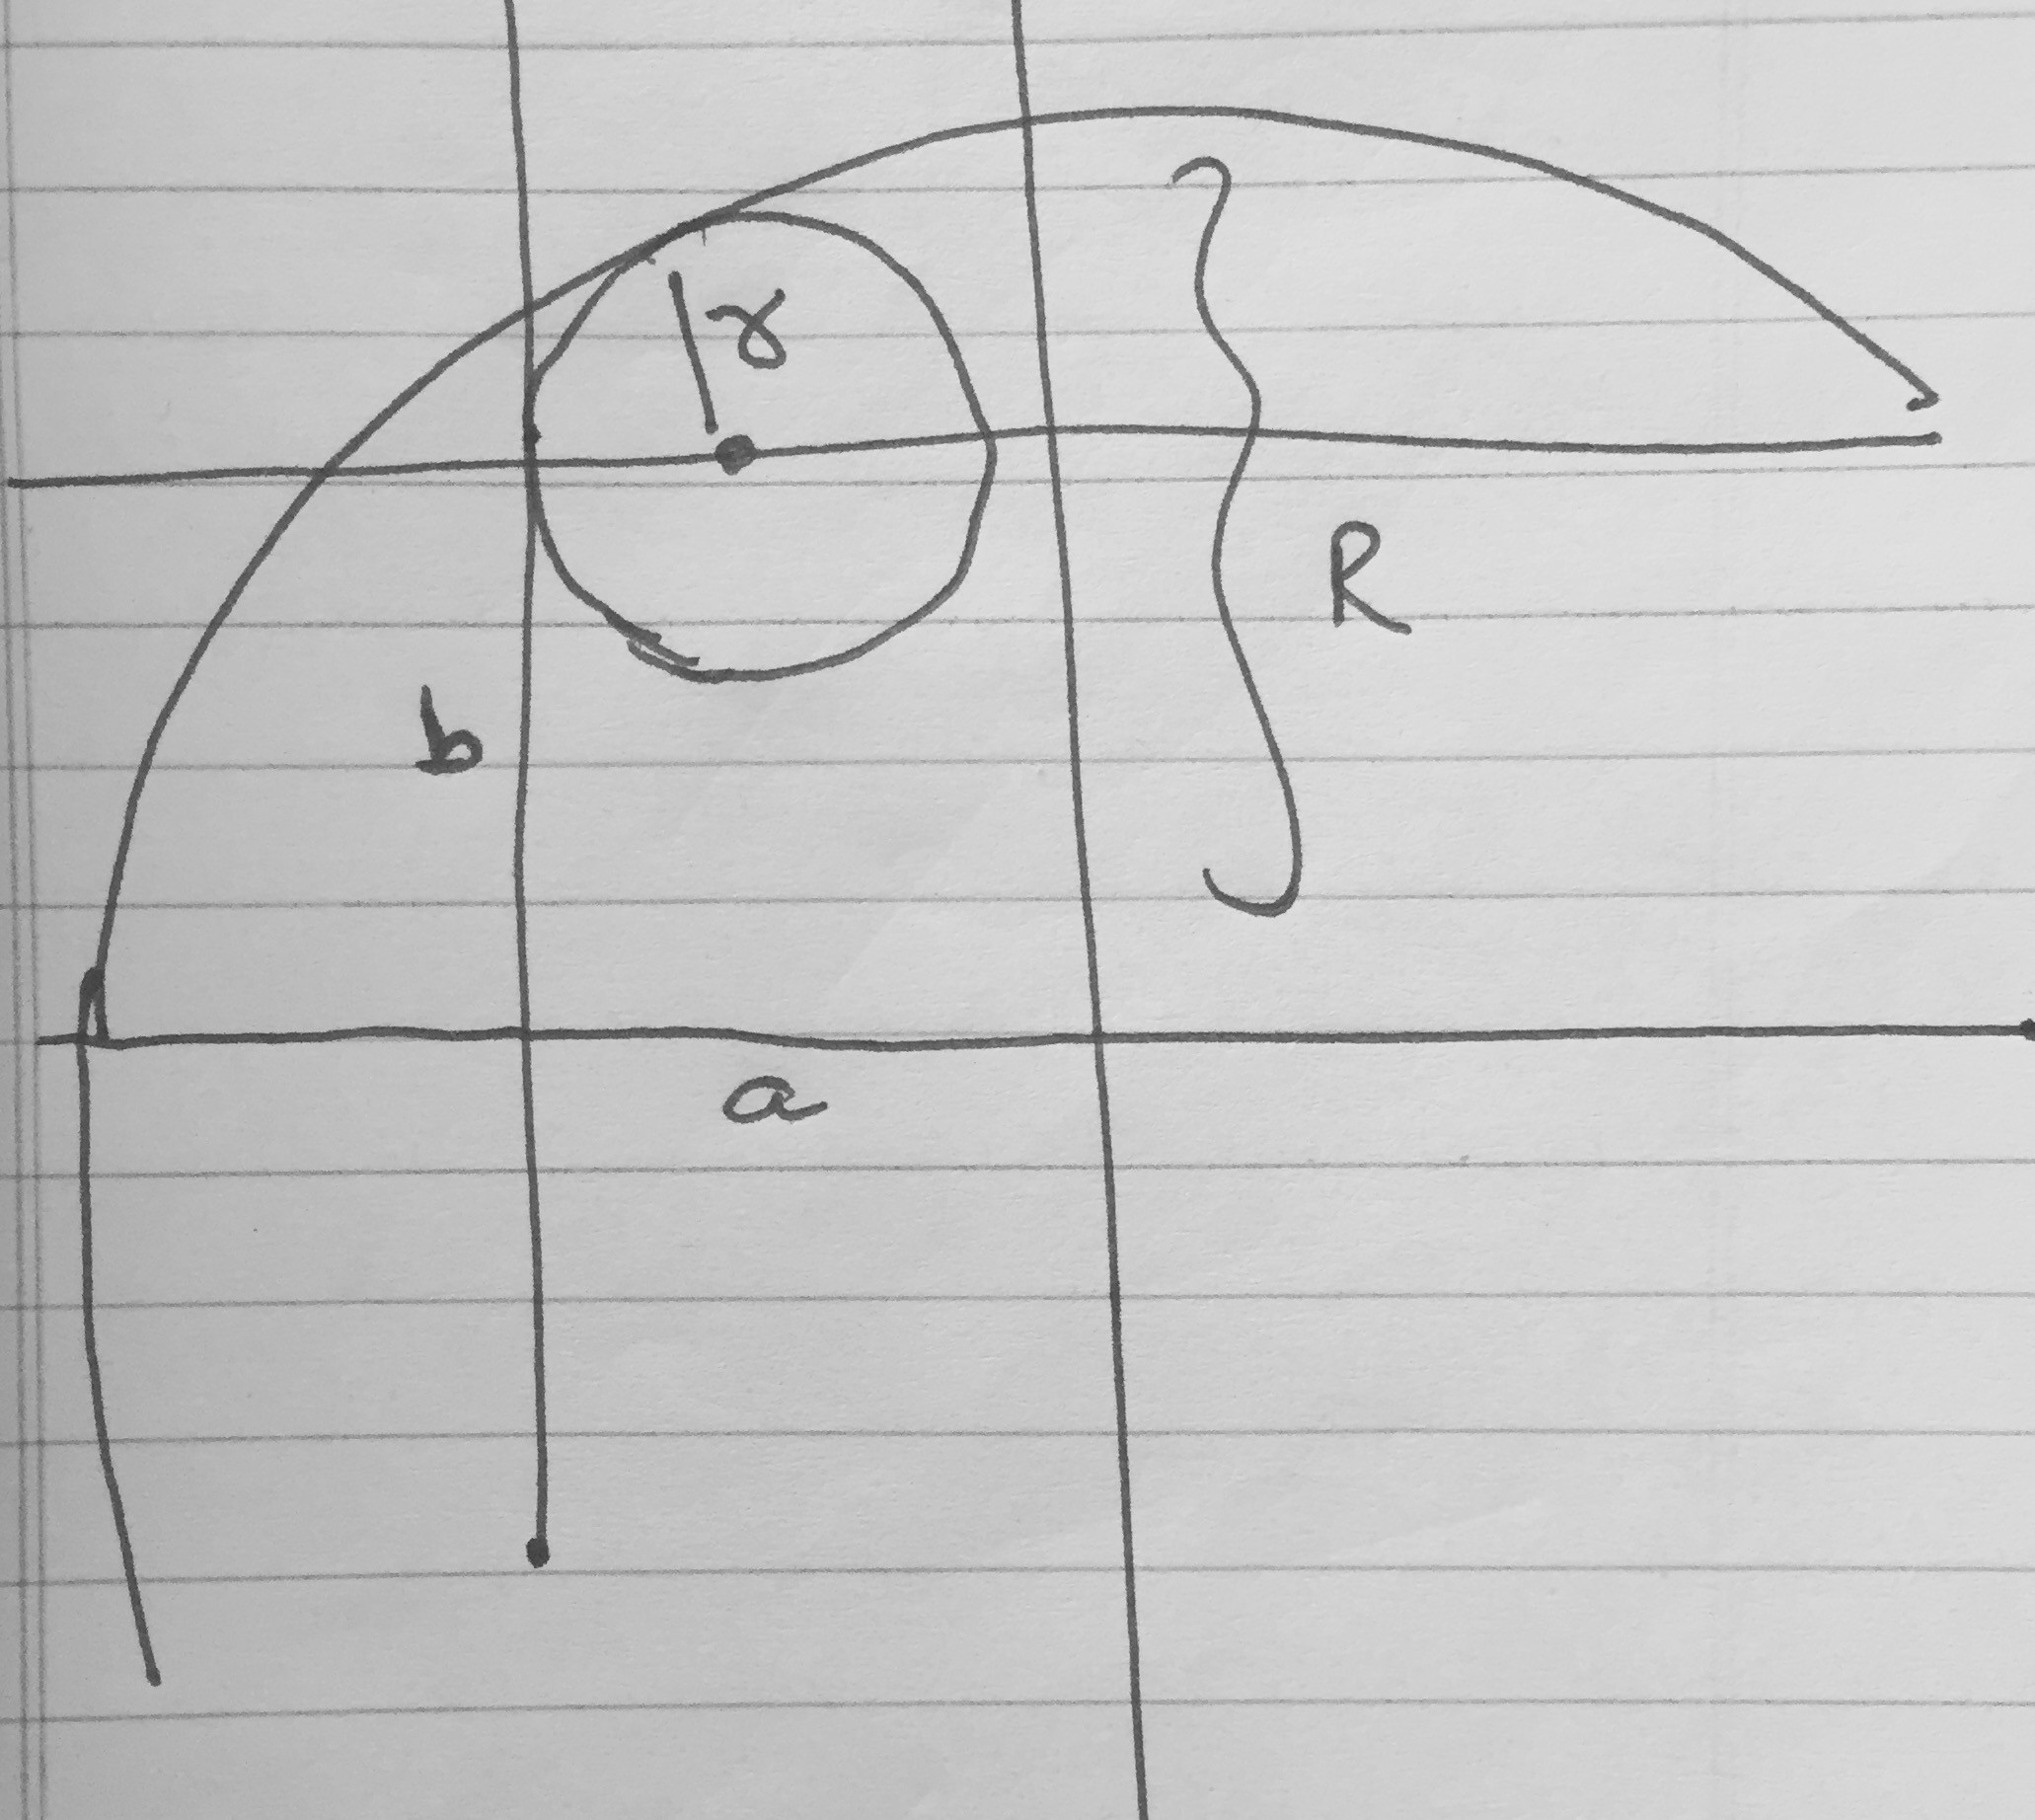 Find Radius Of Circle Given Tangent Line Line And Tangent